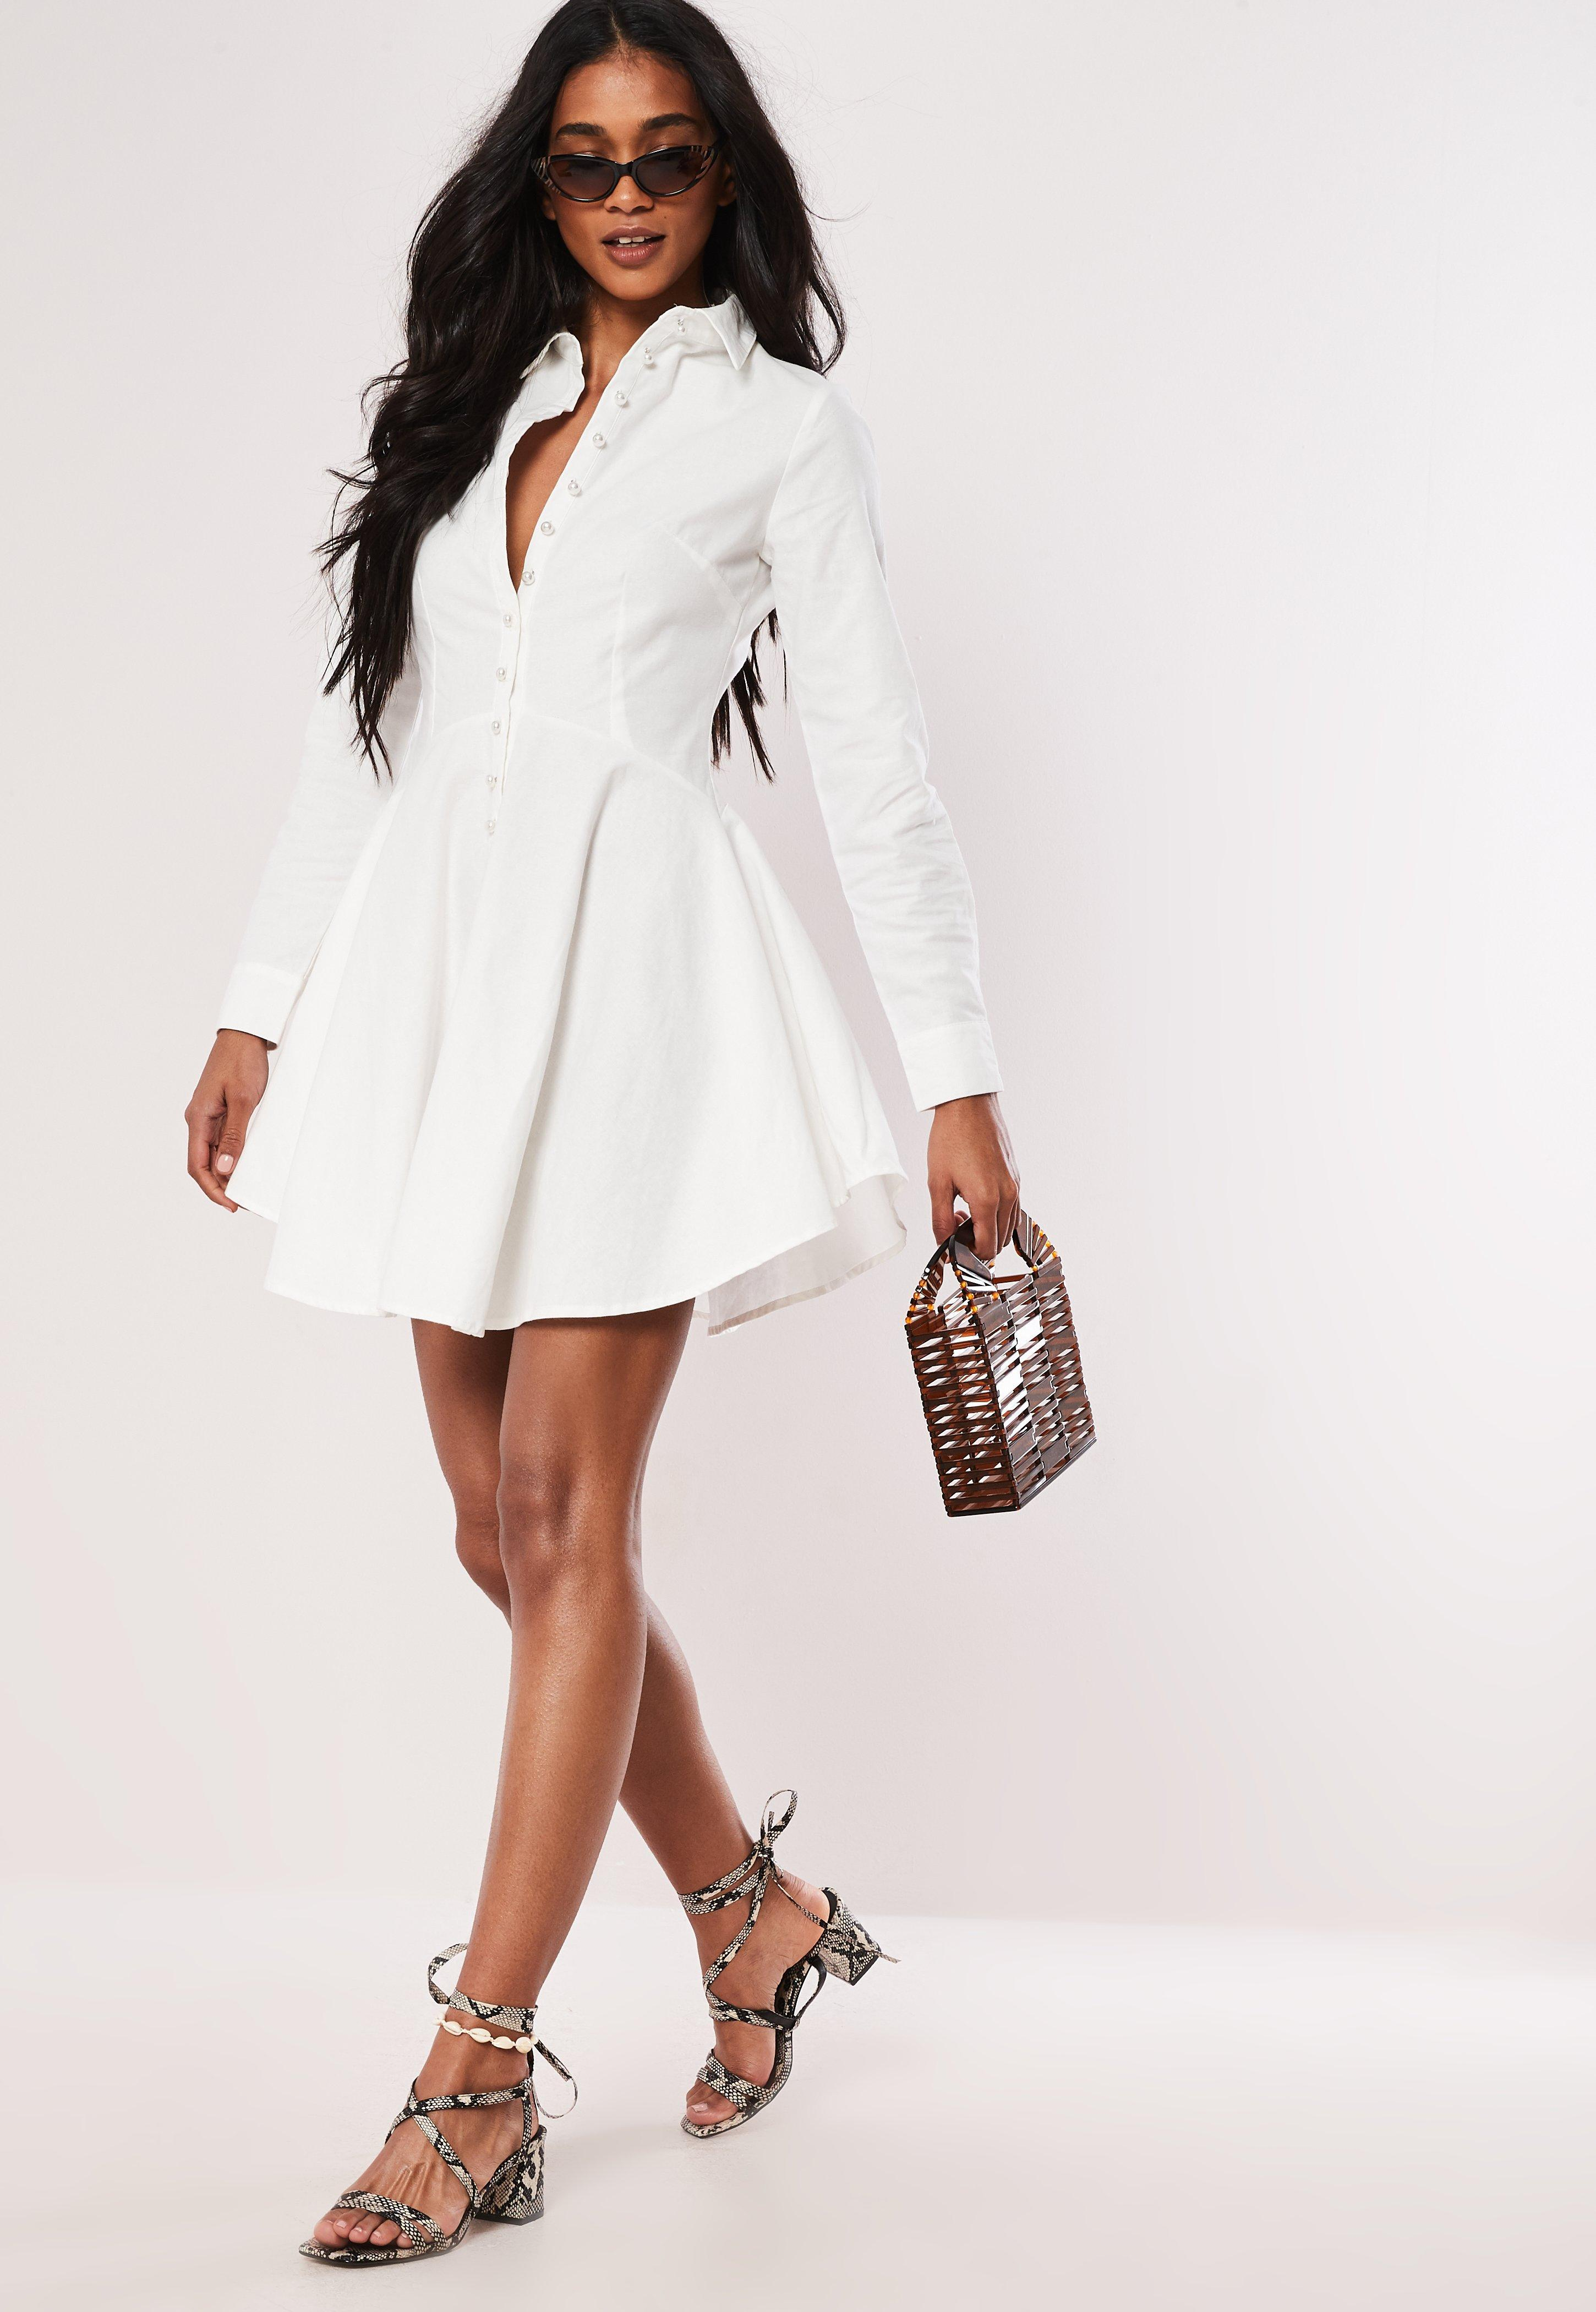 4d2358bfb355 Missguided - White Cotton Button Down Skater Shirt Dress - Lyst. View  fullscreen